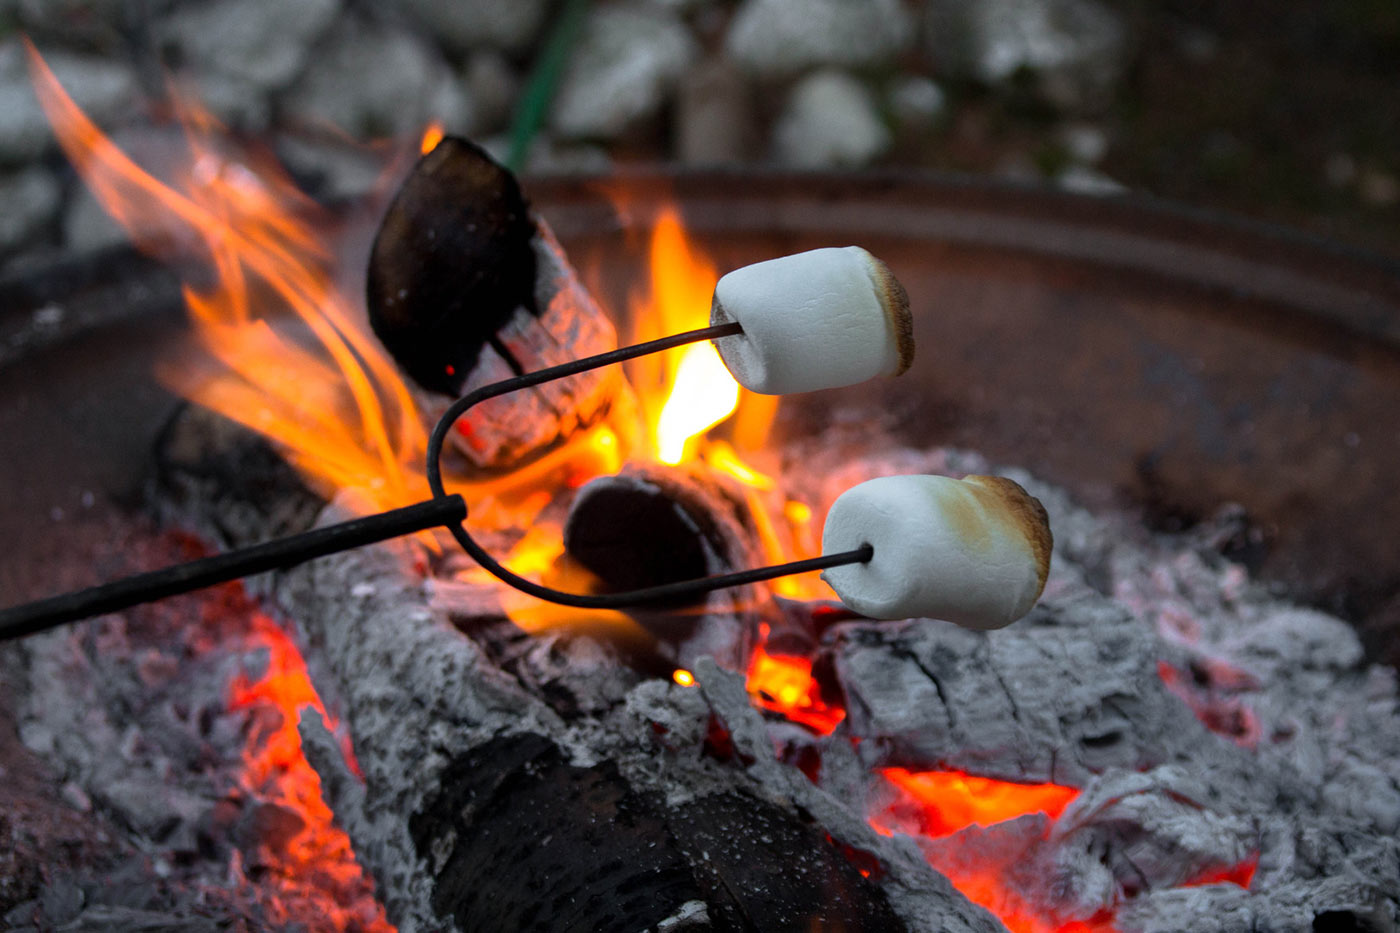 Picture Shows Someone Roasting Marshmallows Over A Campfire